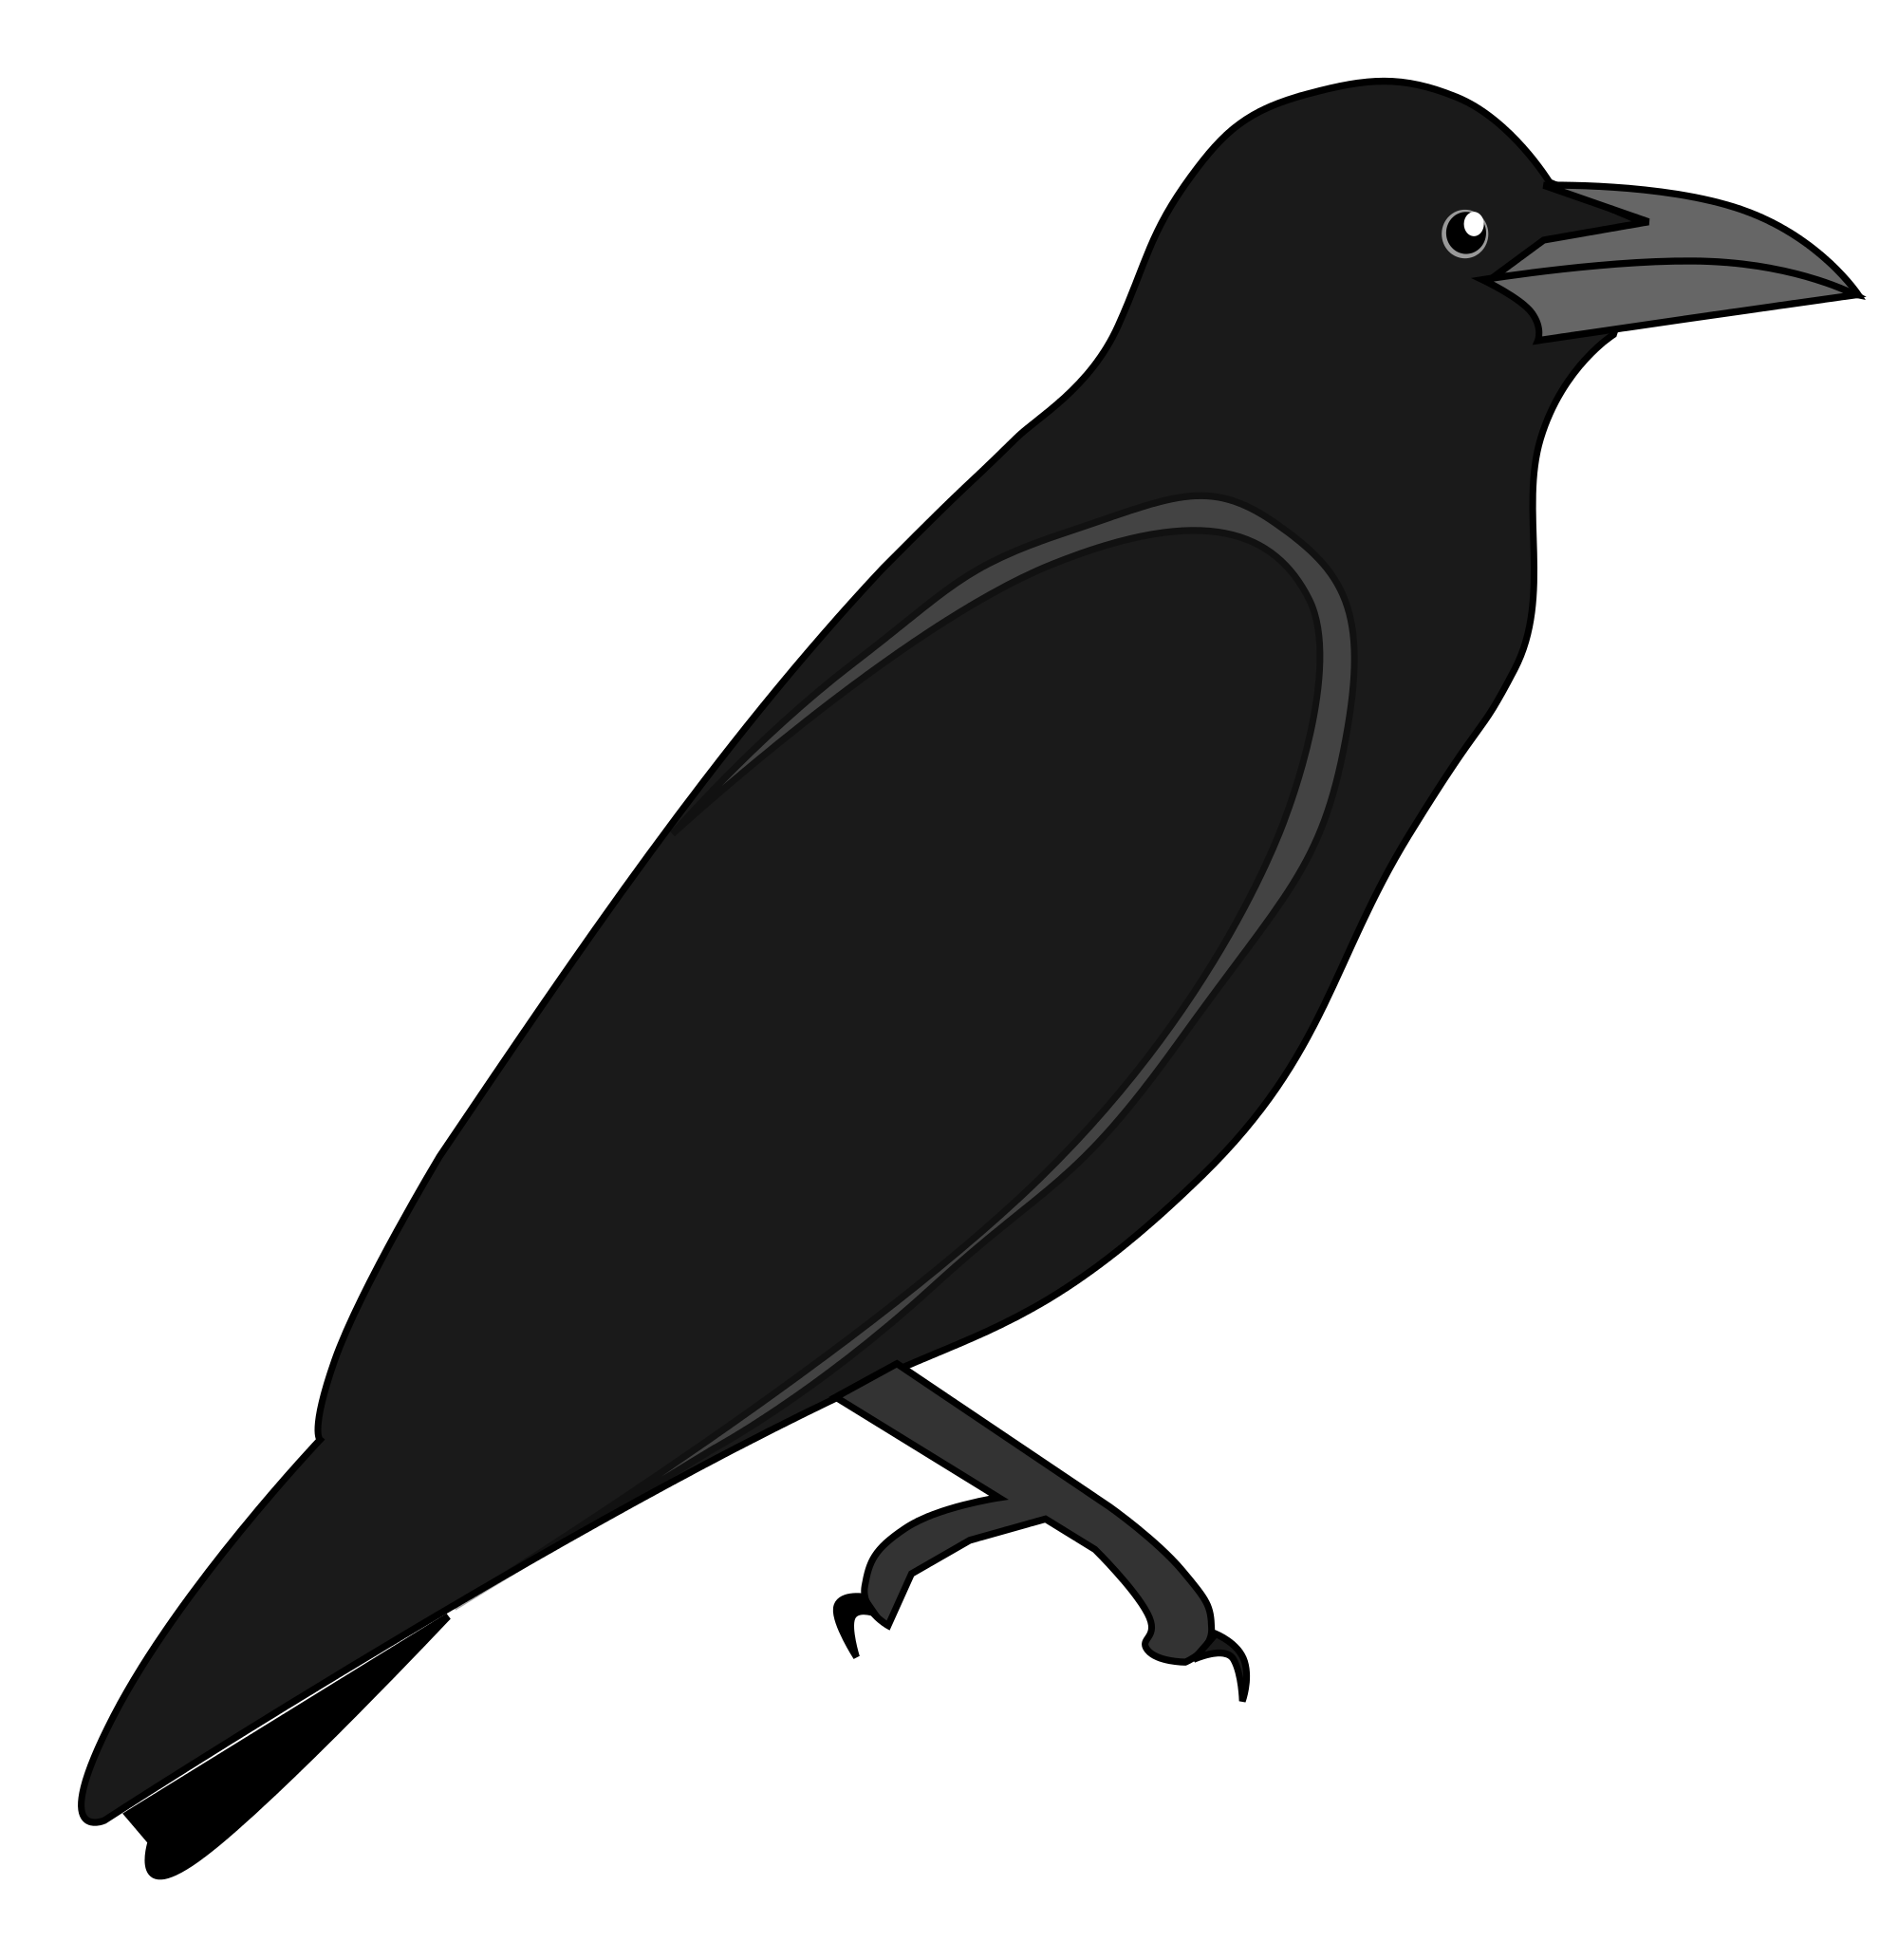 File junglecrow wikimedia commons. Crow clipart svg